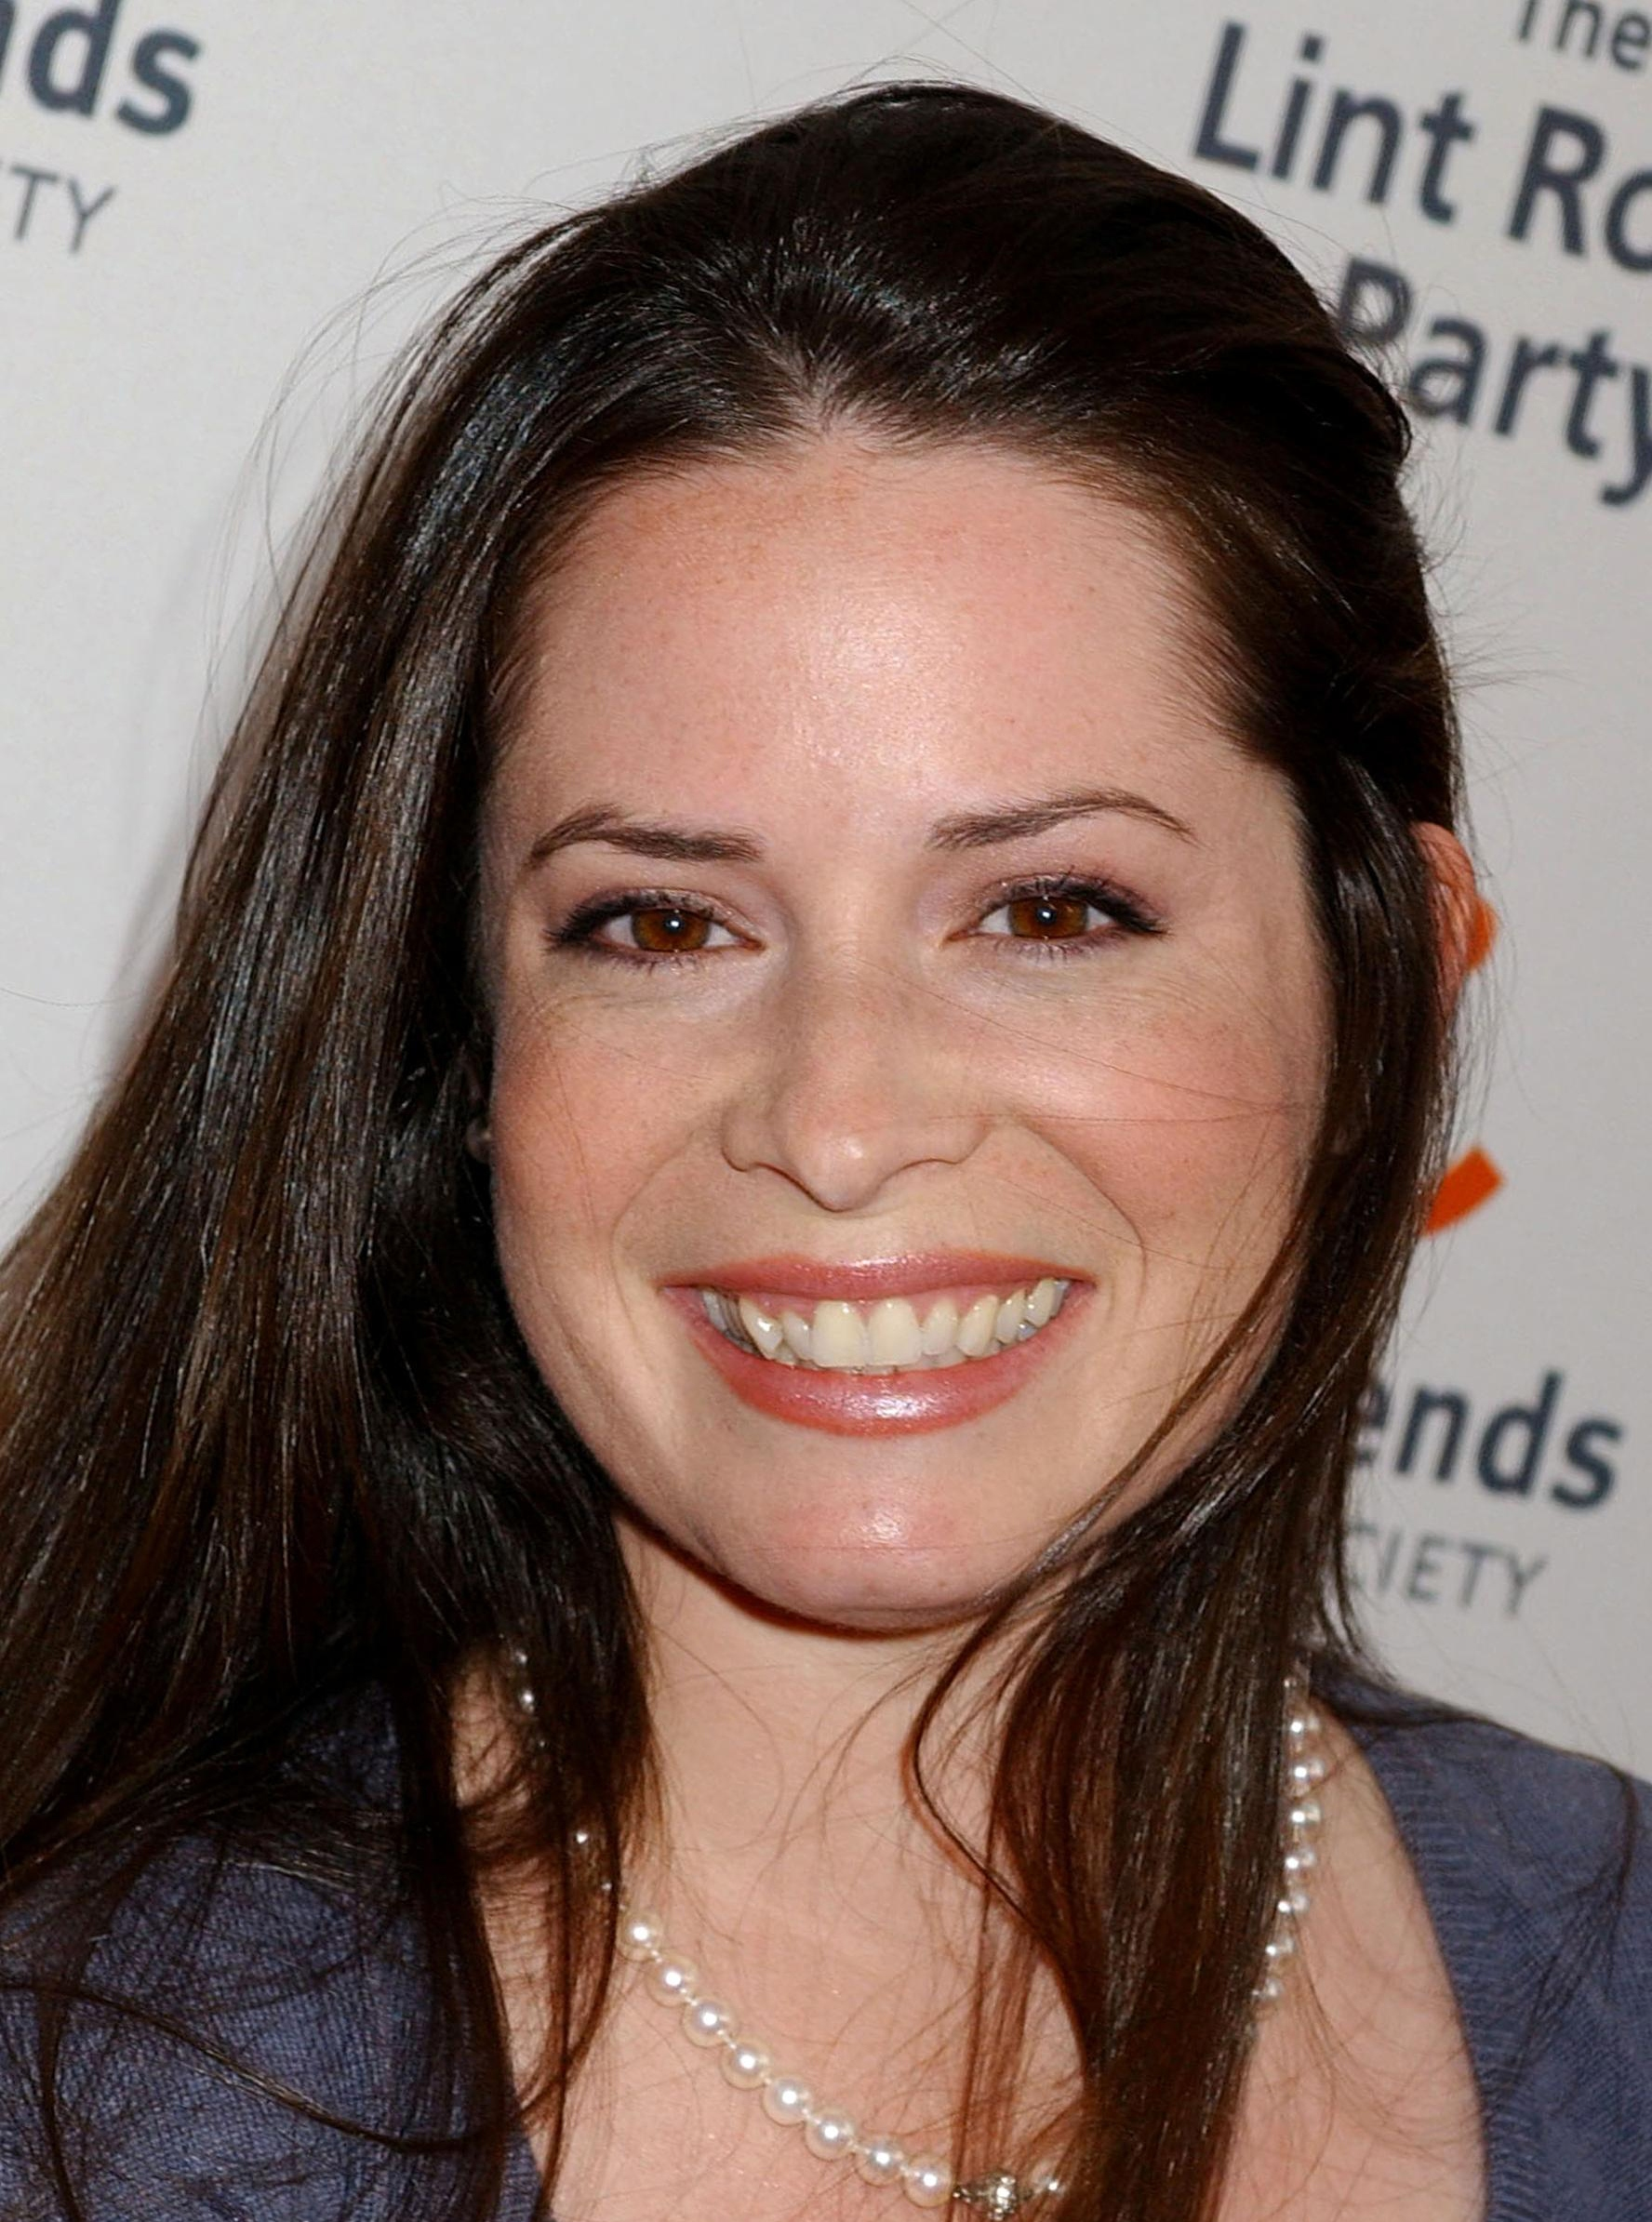 Holly Marie Combs Smile Dvdbash 1 Dvdbash